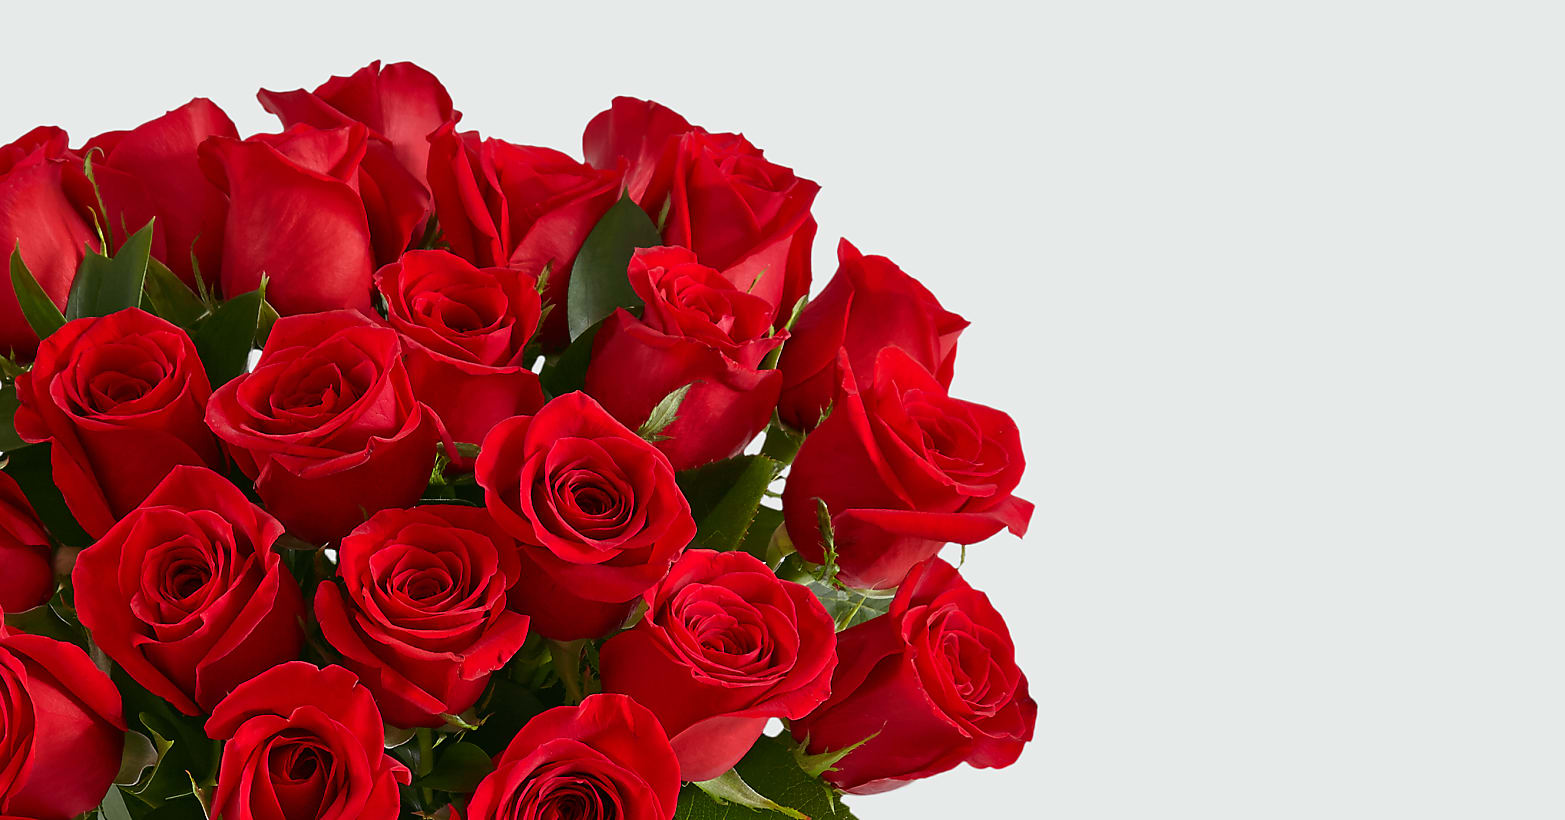 24 Red Roses with Glass Vase - Image 3 Of 5